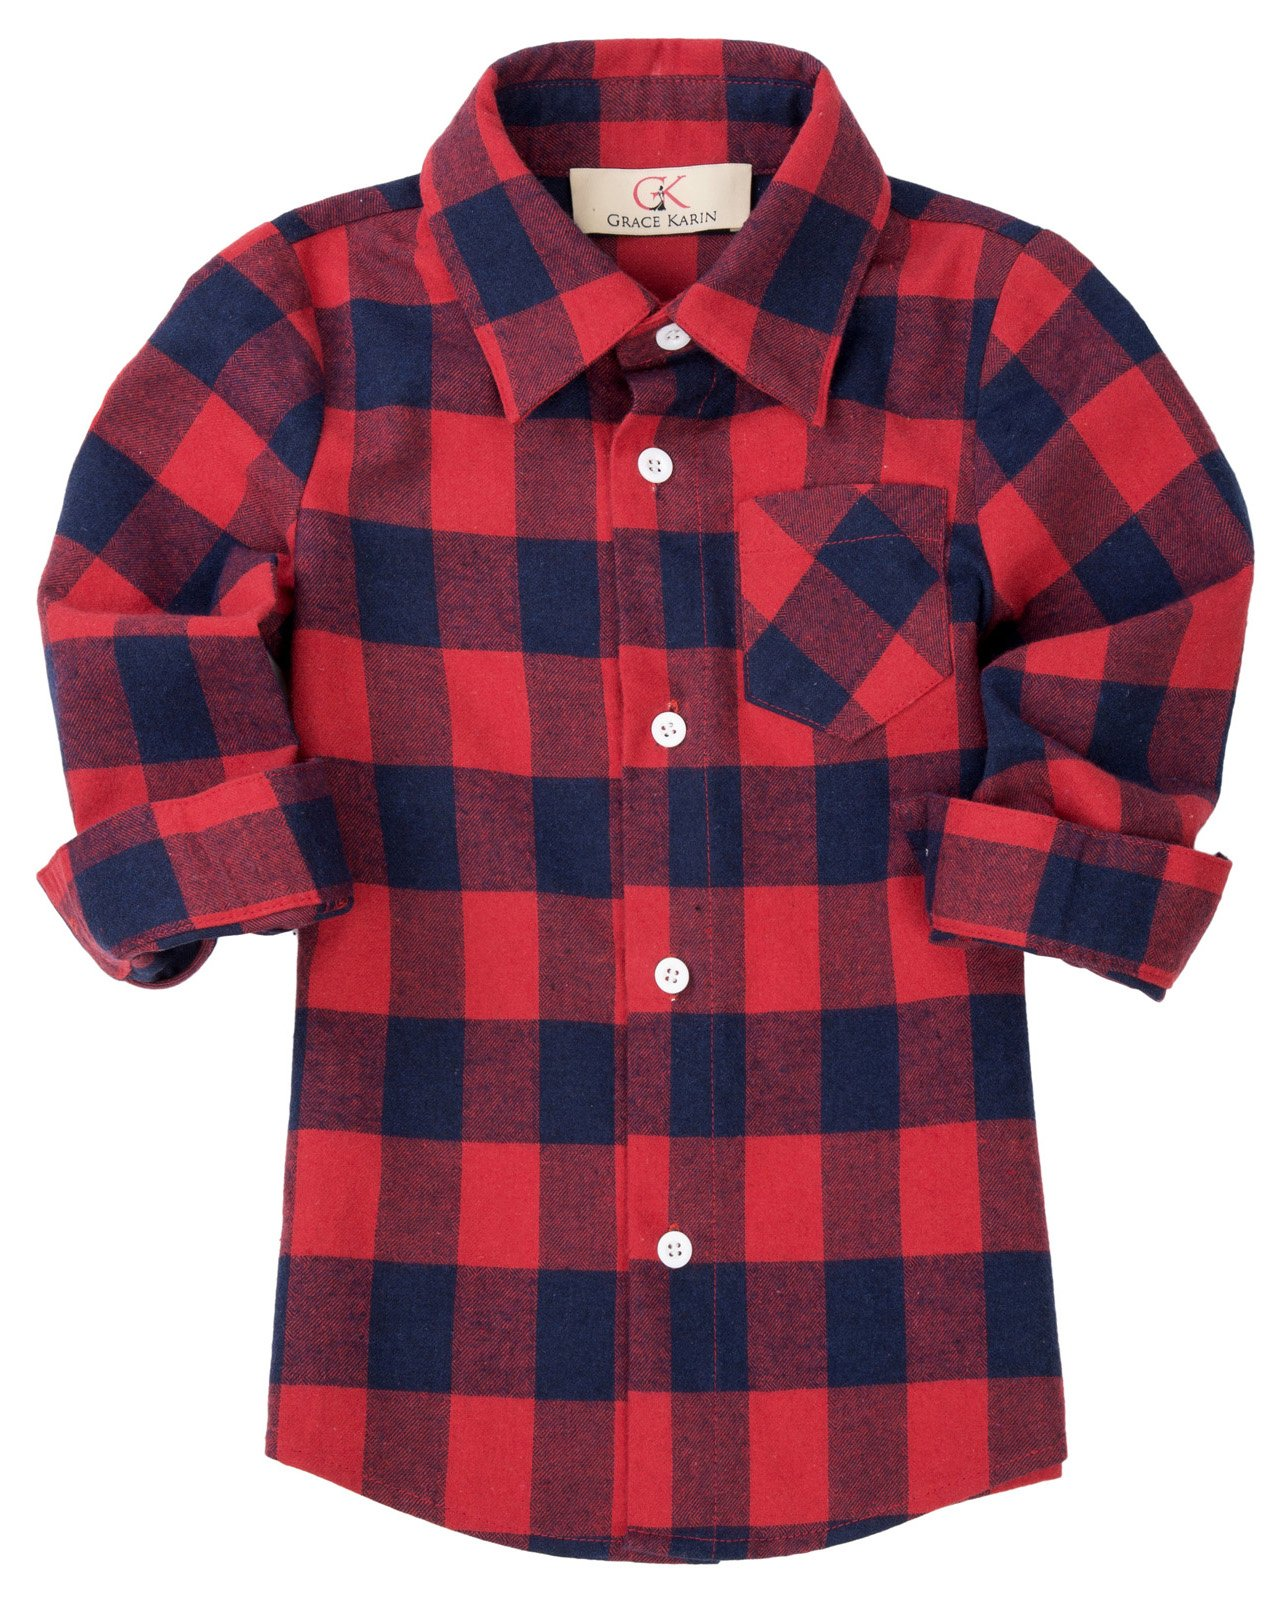 GRACE KARIN Boys Long Sleeve Lapel Casual Shirt with Pocket ,7-9yrs,Red